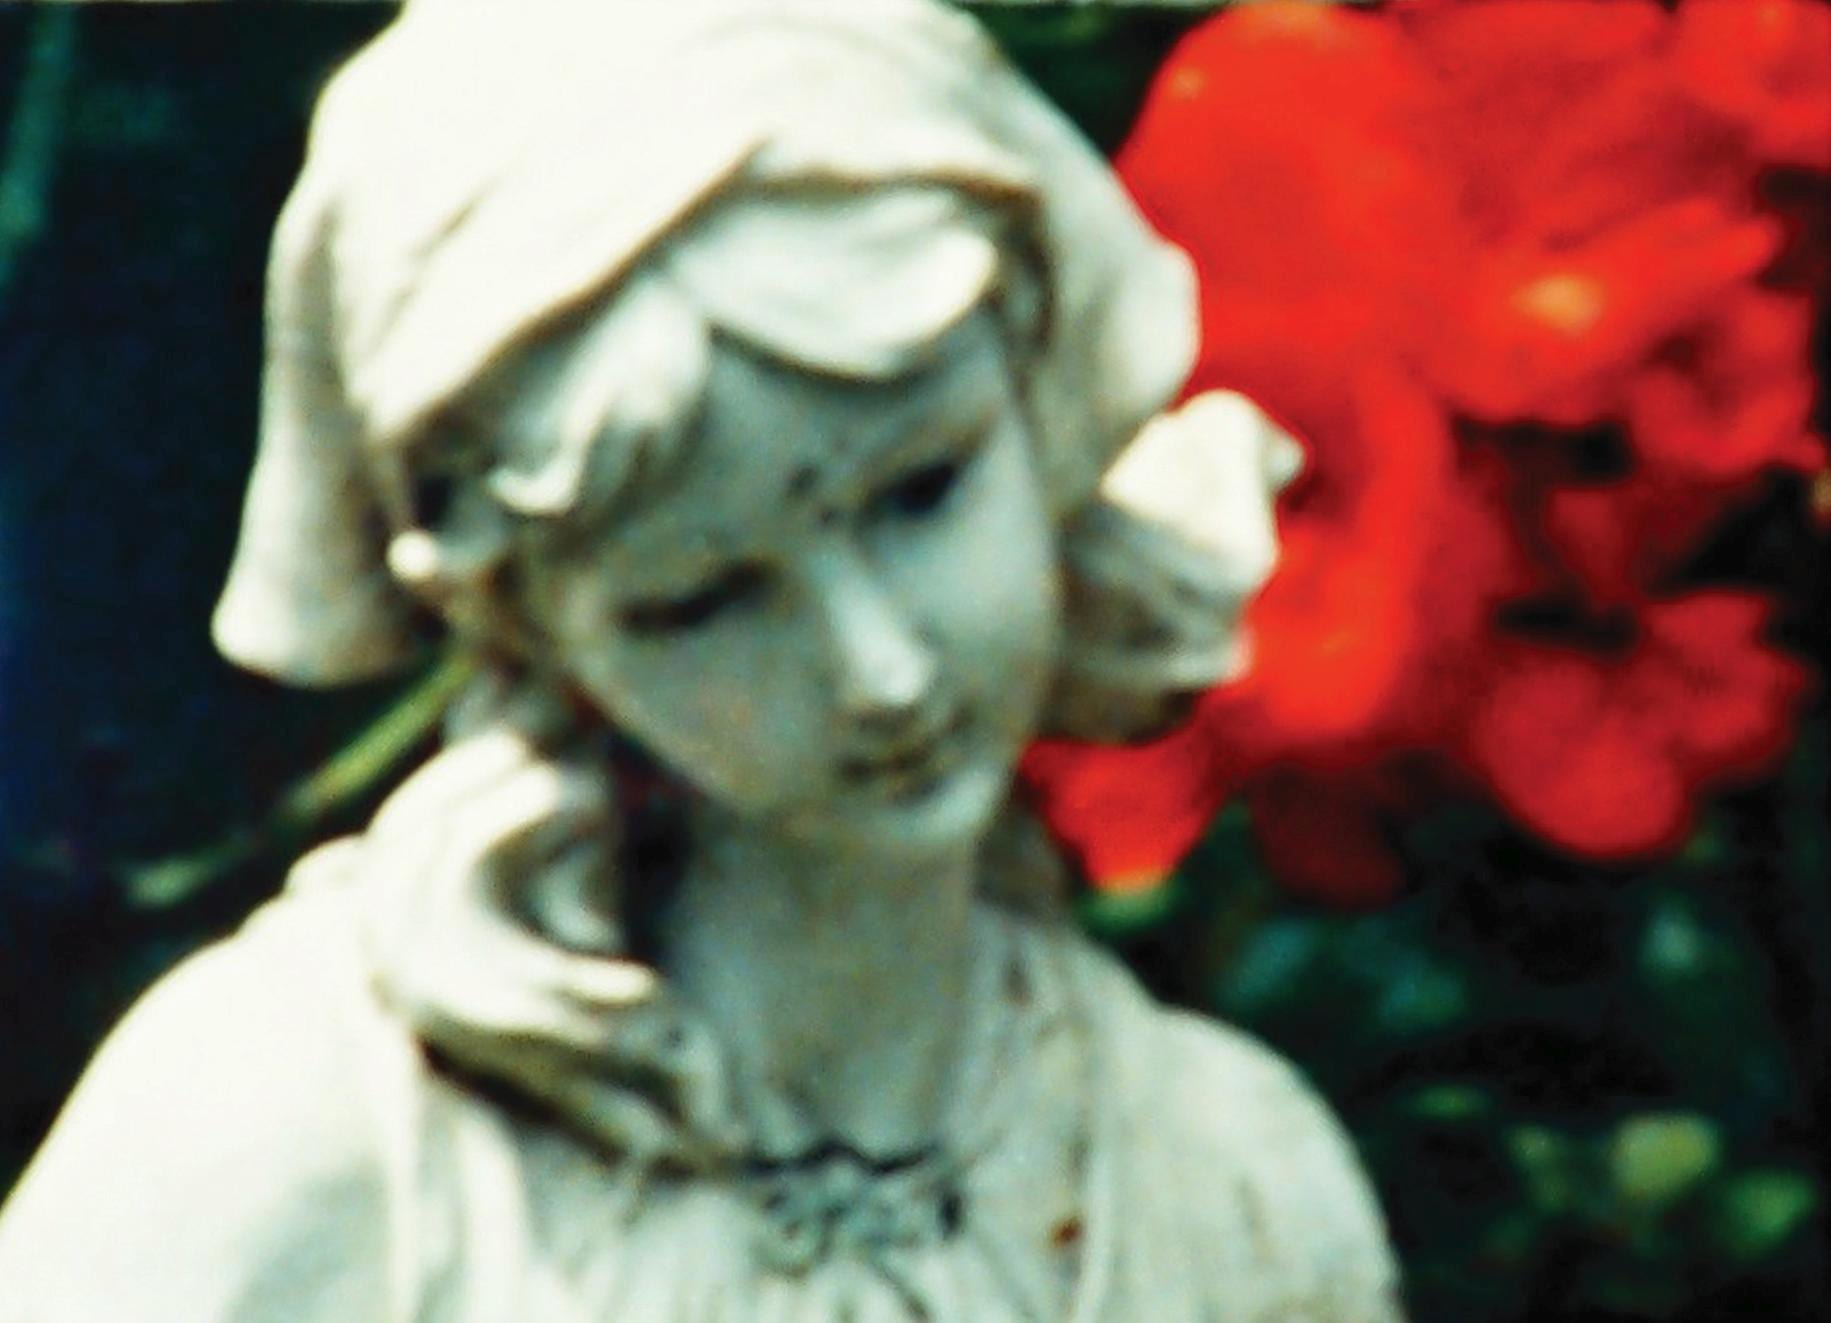 Barry Brown & Irene Proebsting, Luna Berlin, 2013, Super 8mm Displayed on Digital Video Format, Colour, Sound, 9:30mins, Latrobe Regional Gallery Collection.